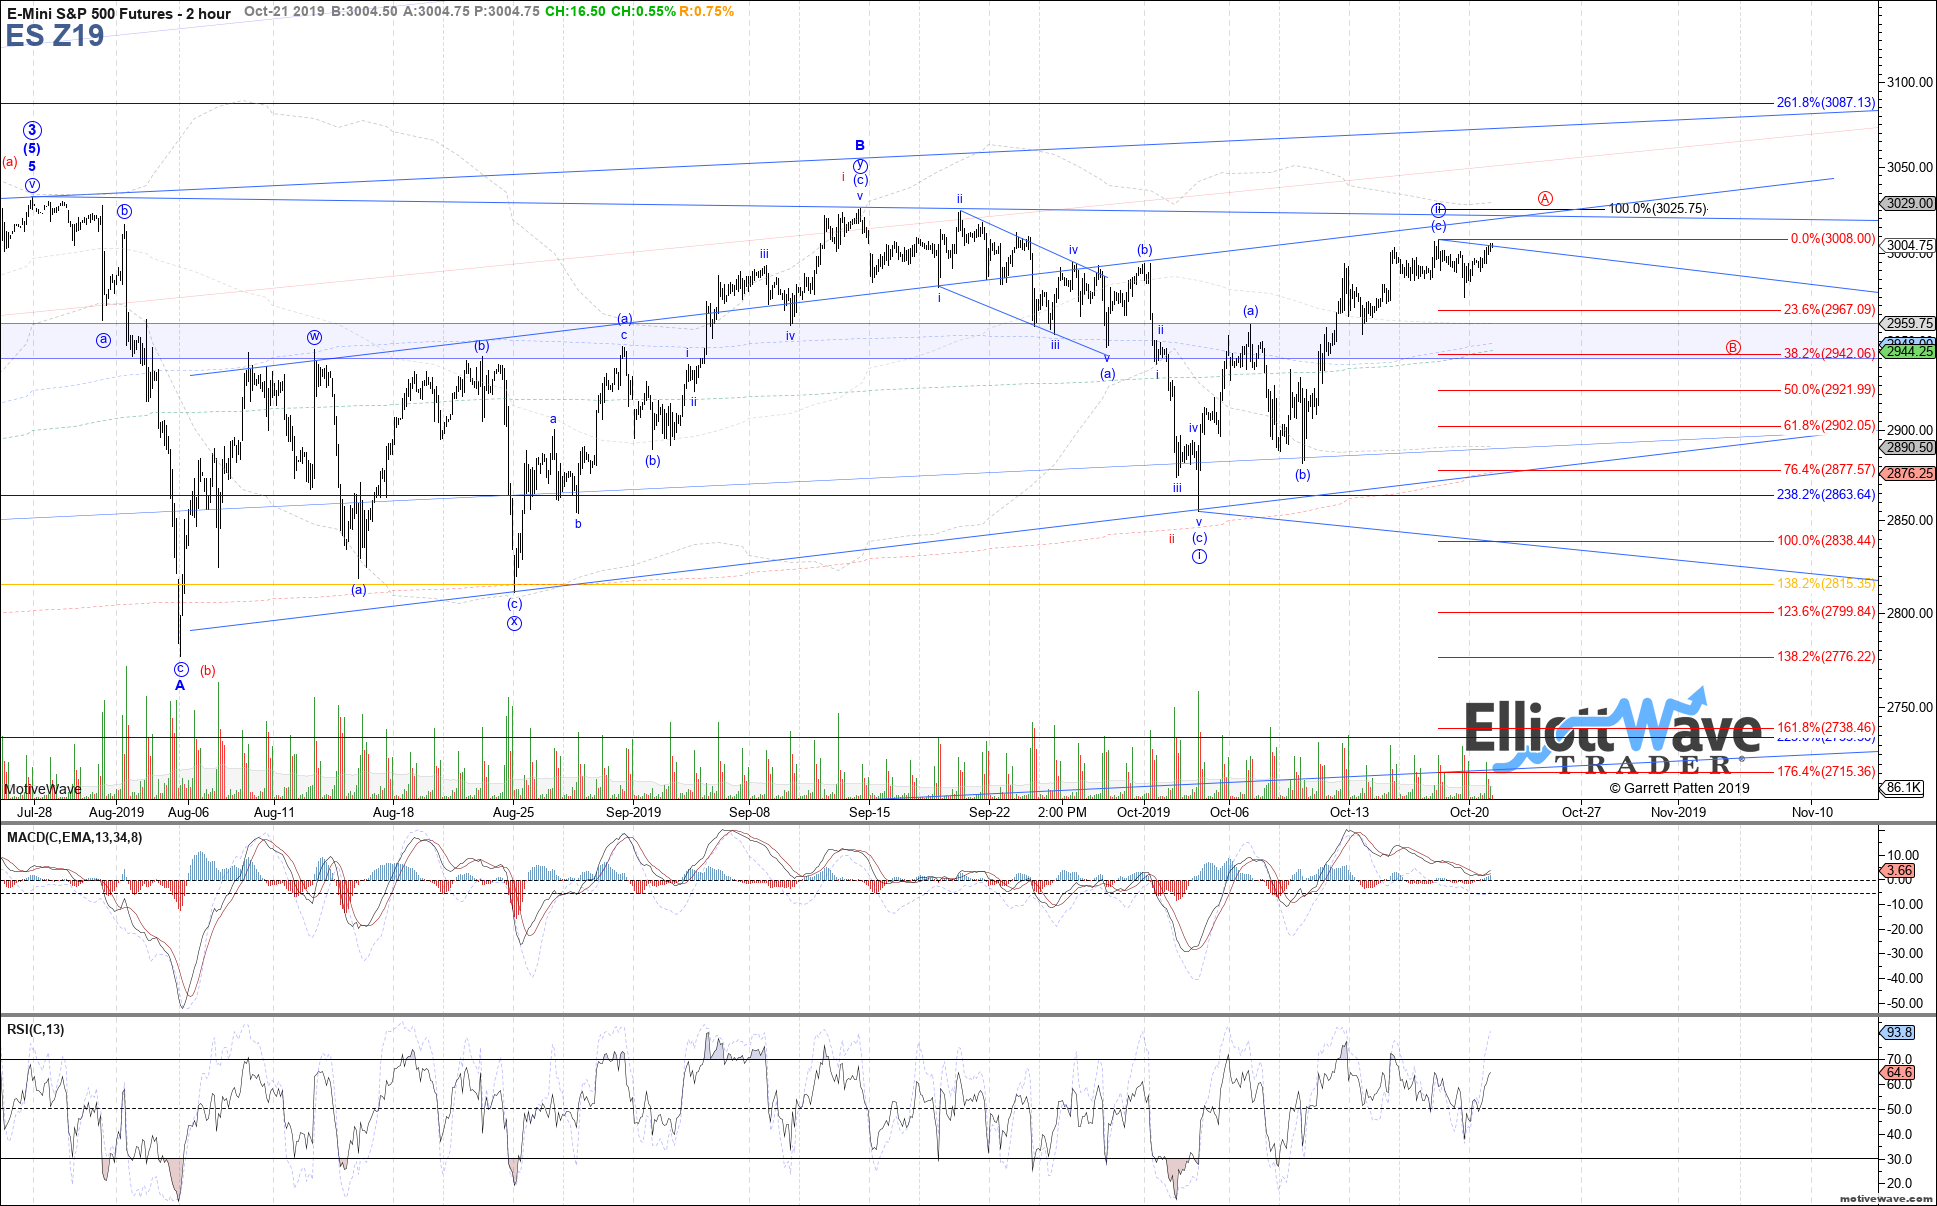 ES Z19 - Primary Analysis - Oct-21 1227 PM (2 hour)